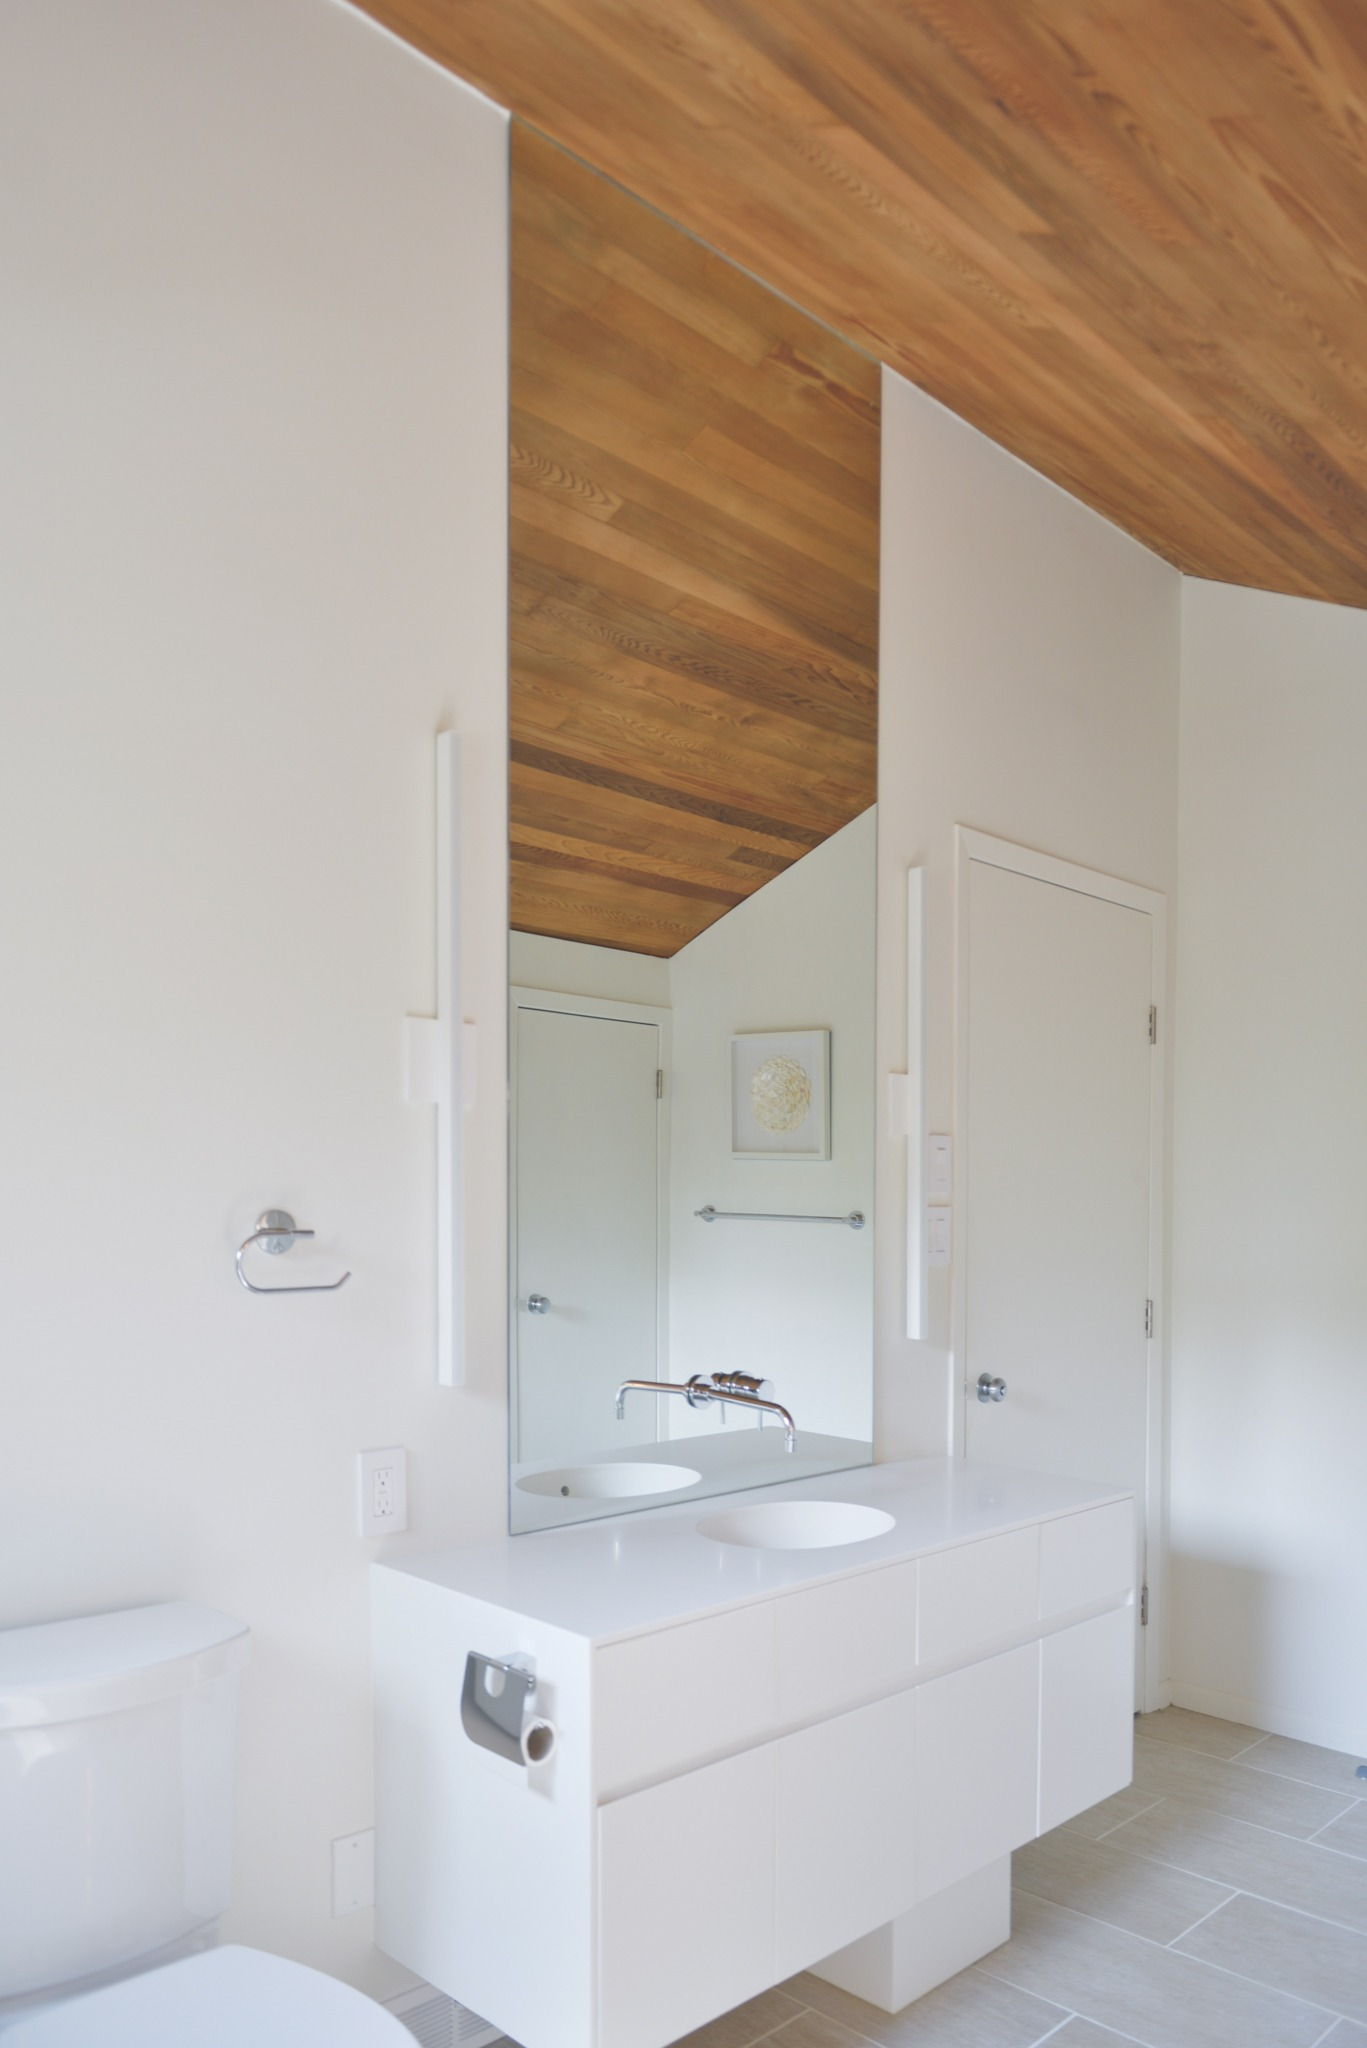 Design-Built Bathroom Renovation